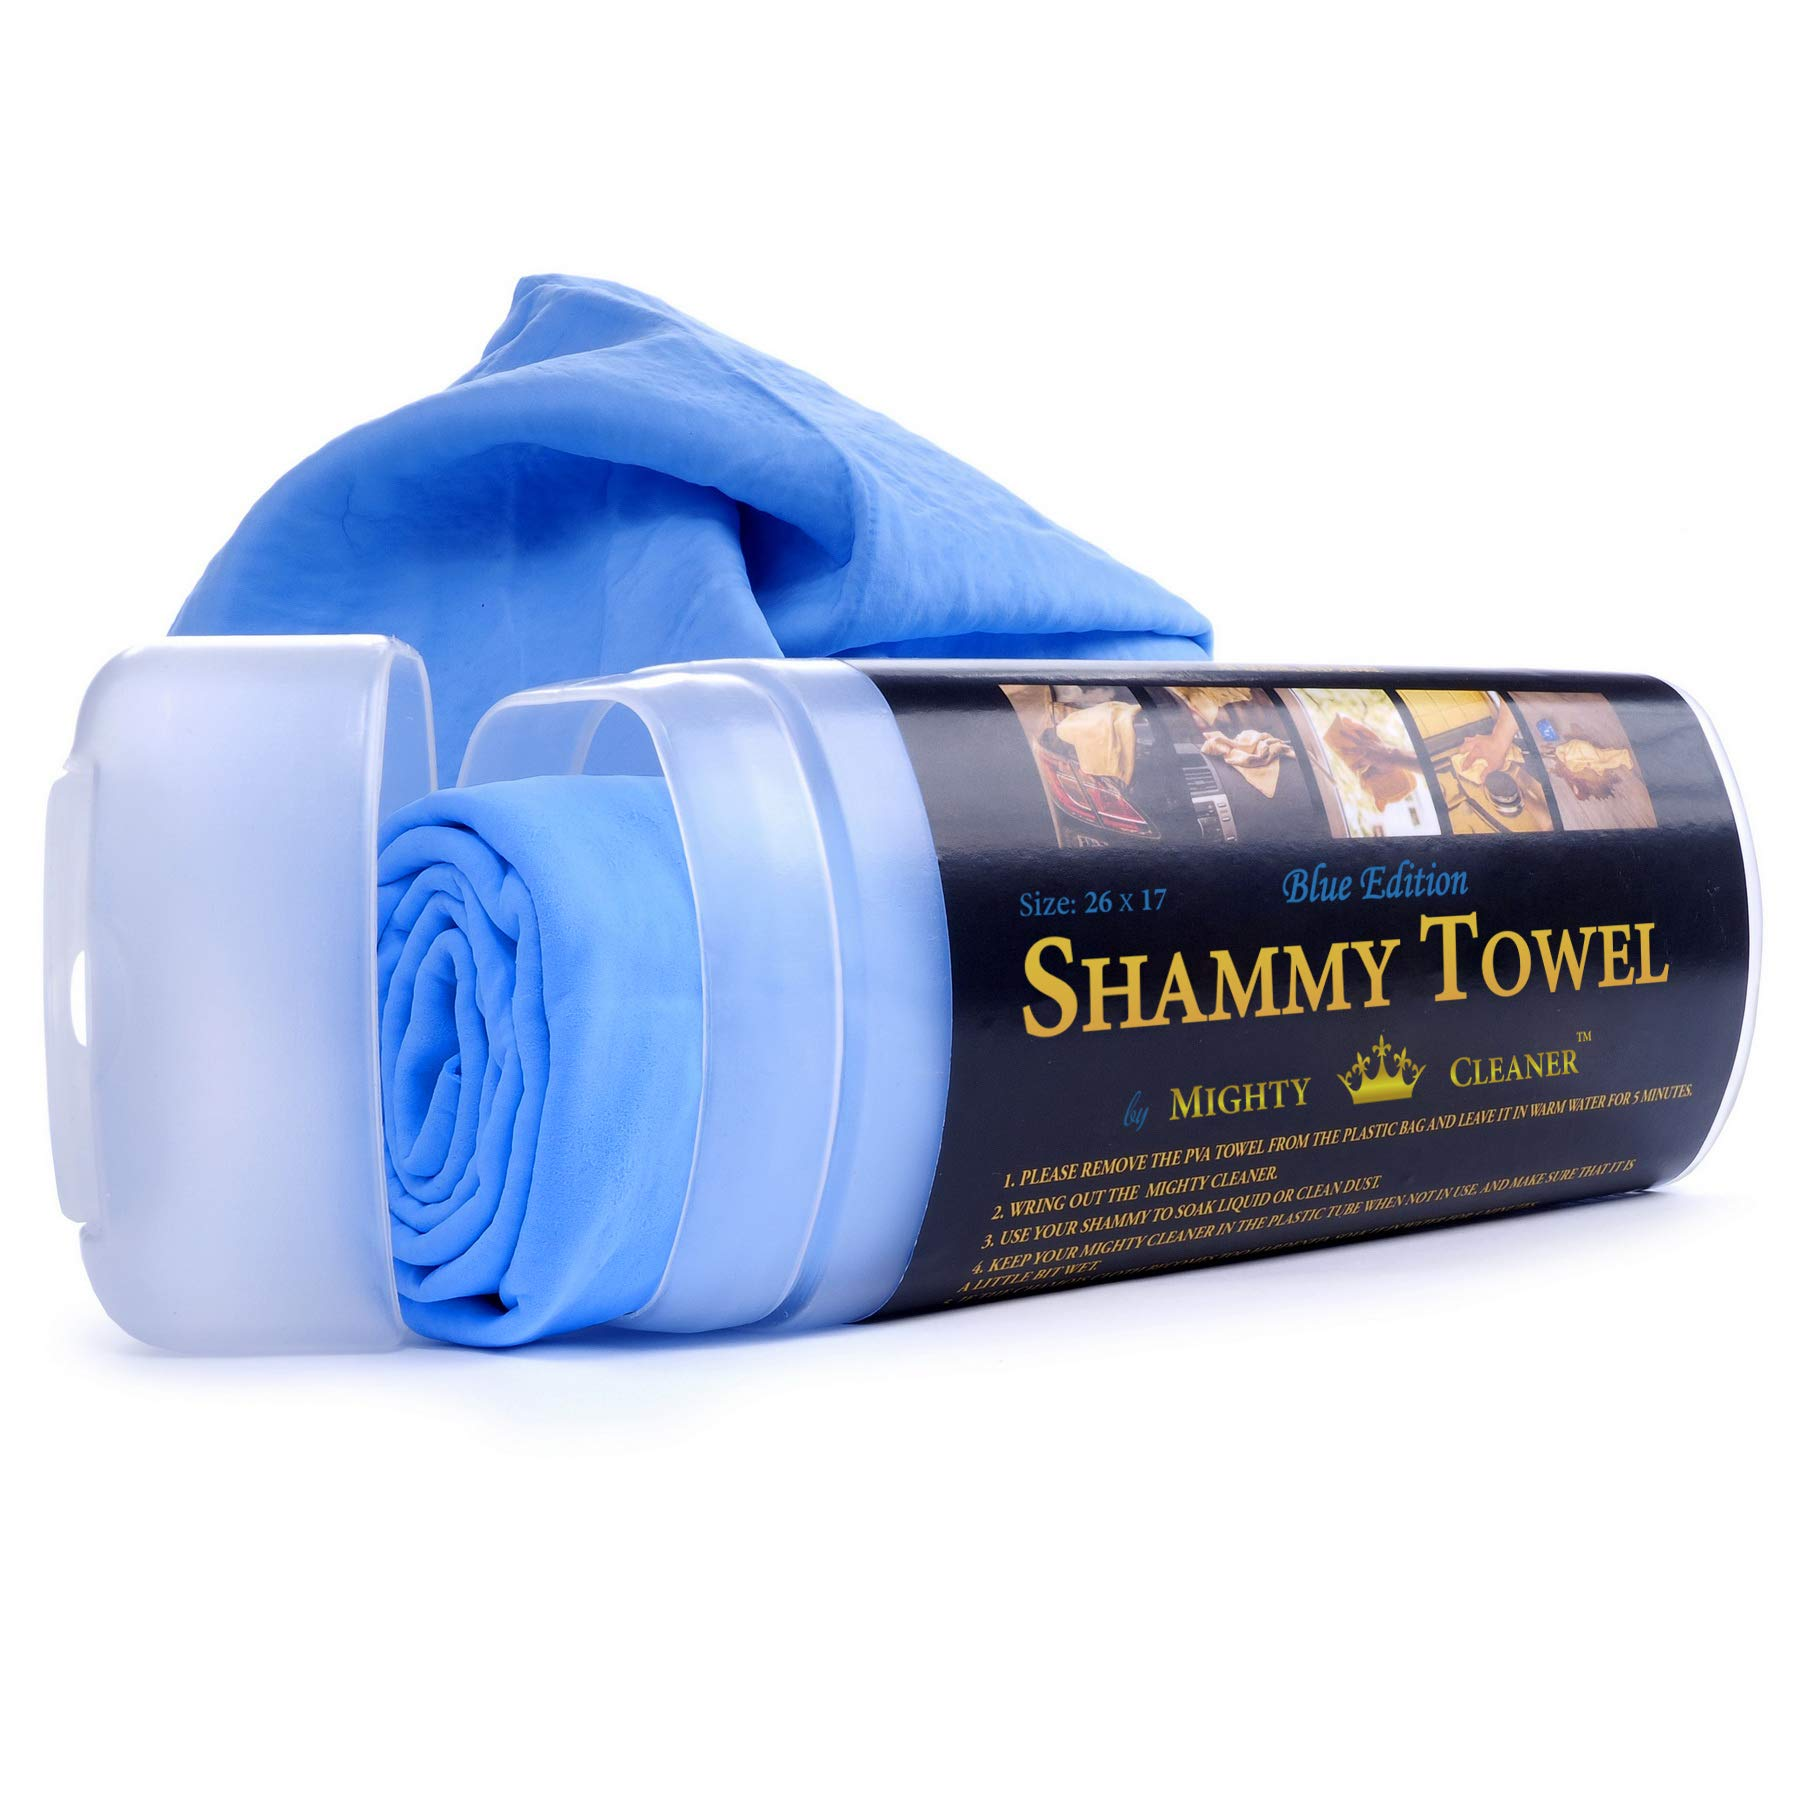 Mighty Cleaner Car Drying Towel - 26'' x 17'' Chamois Cloth for Car - Original Shammy Towel for Car